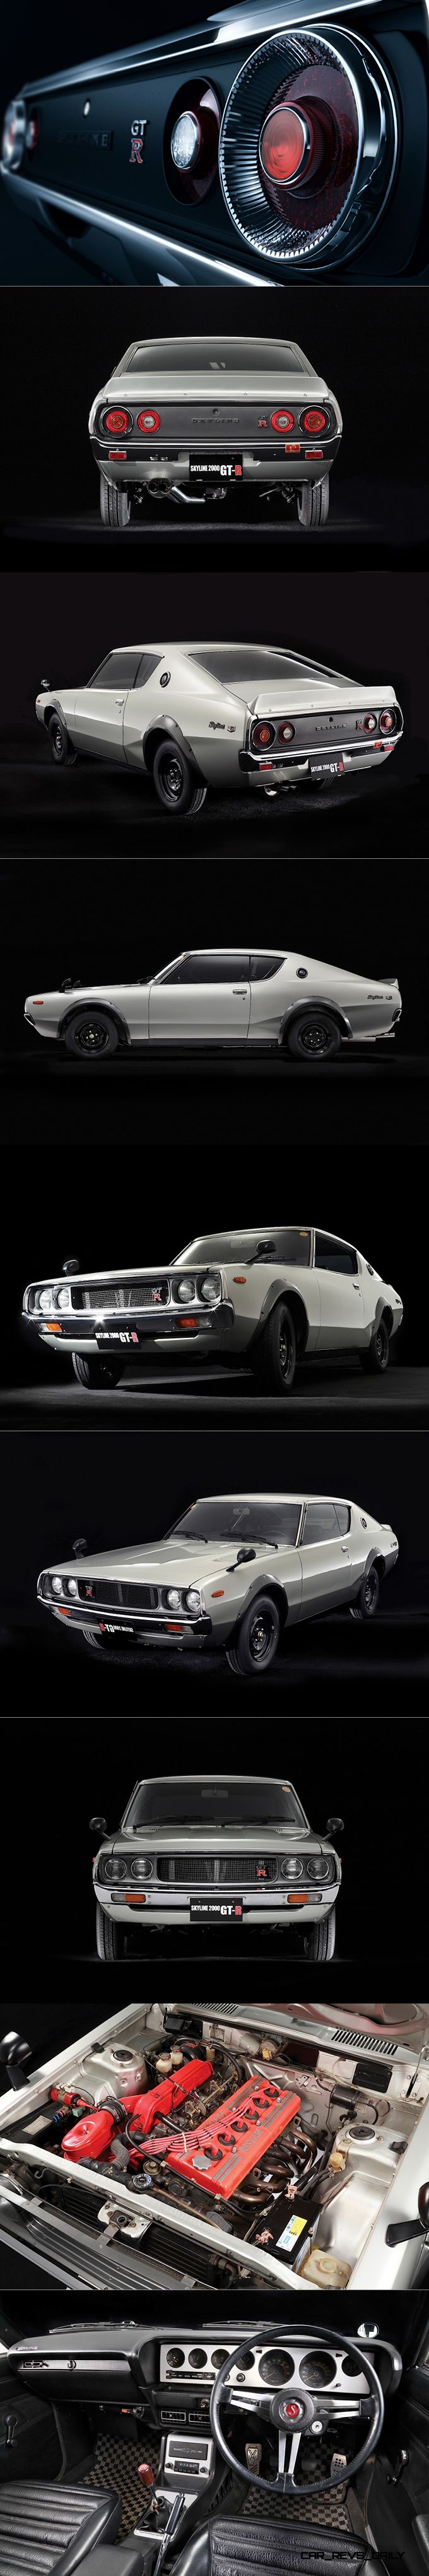 1972 Nissan Skyline GT-R / C110 / Japan / white / 16-73